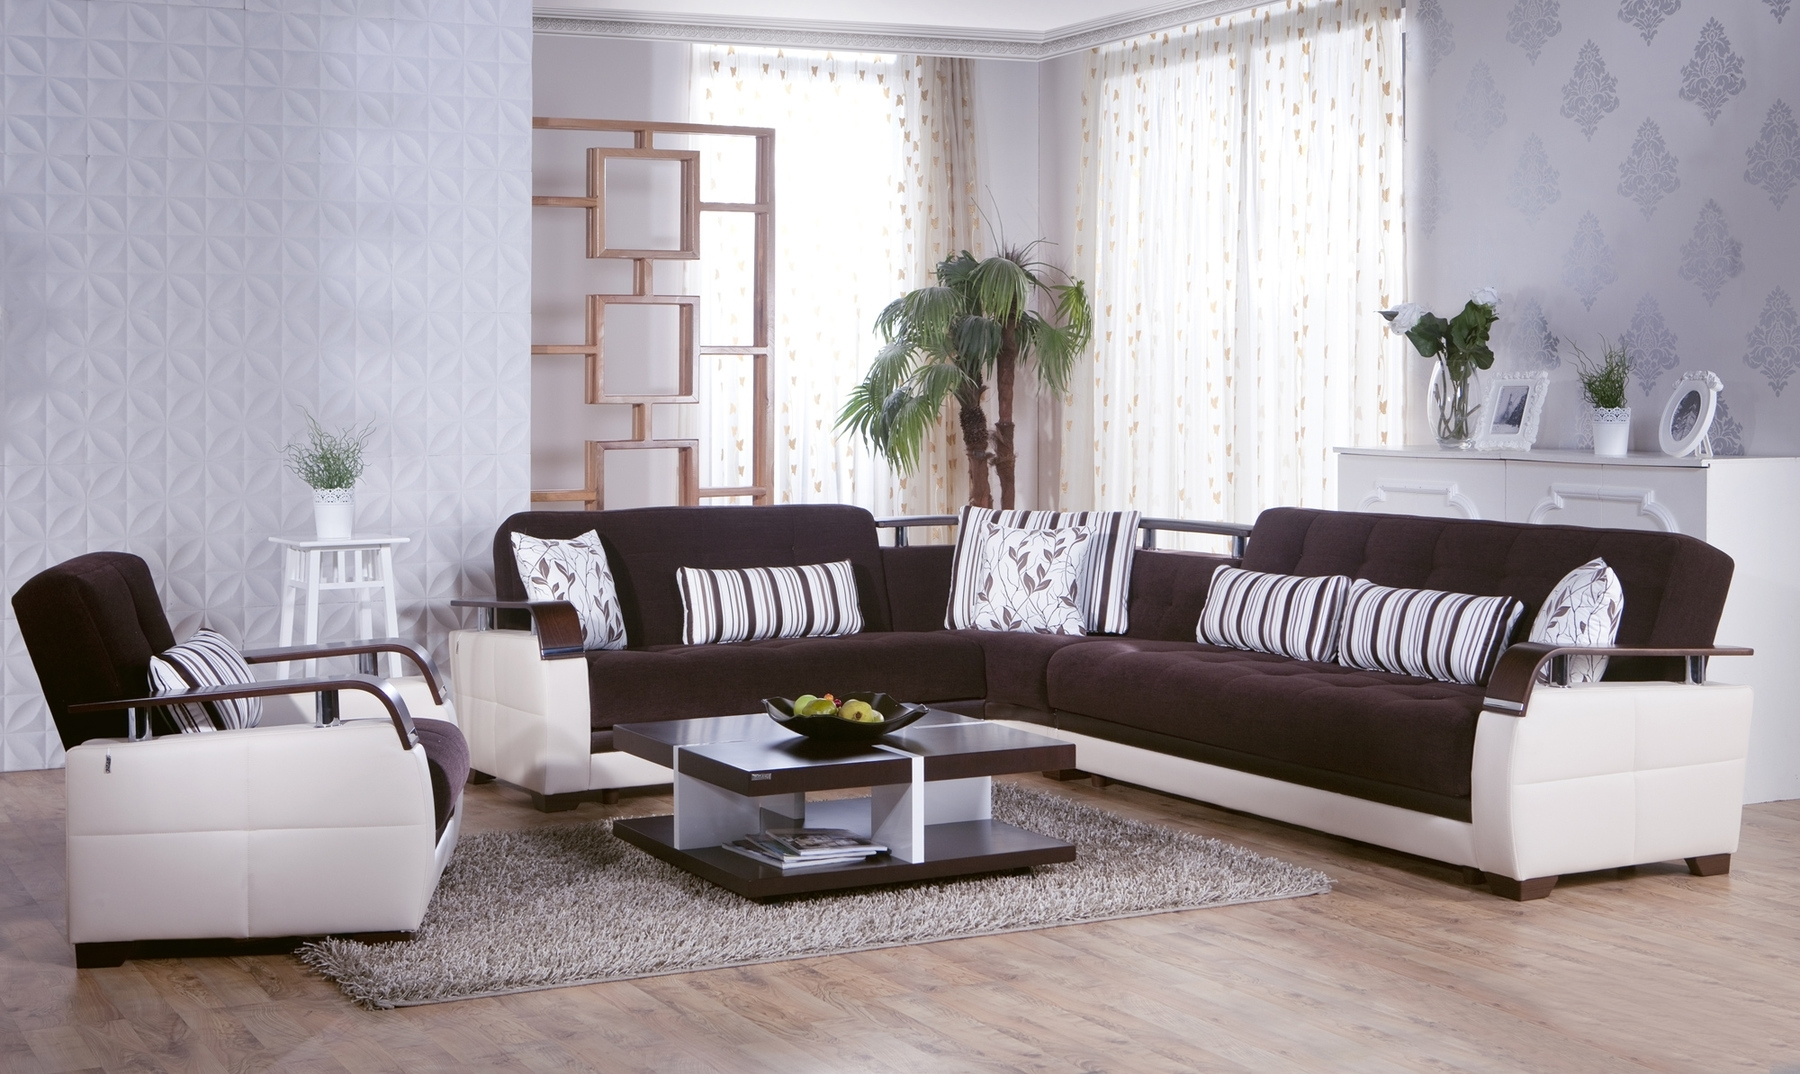 Contemporary Microfiber Sectional Sofa Pertaining To Most Popular Modern Microfiber Sectional Sofas (View 4 of 20)